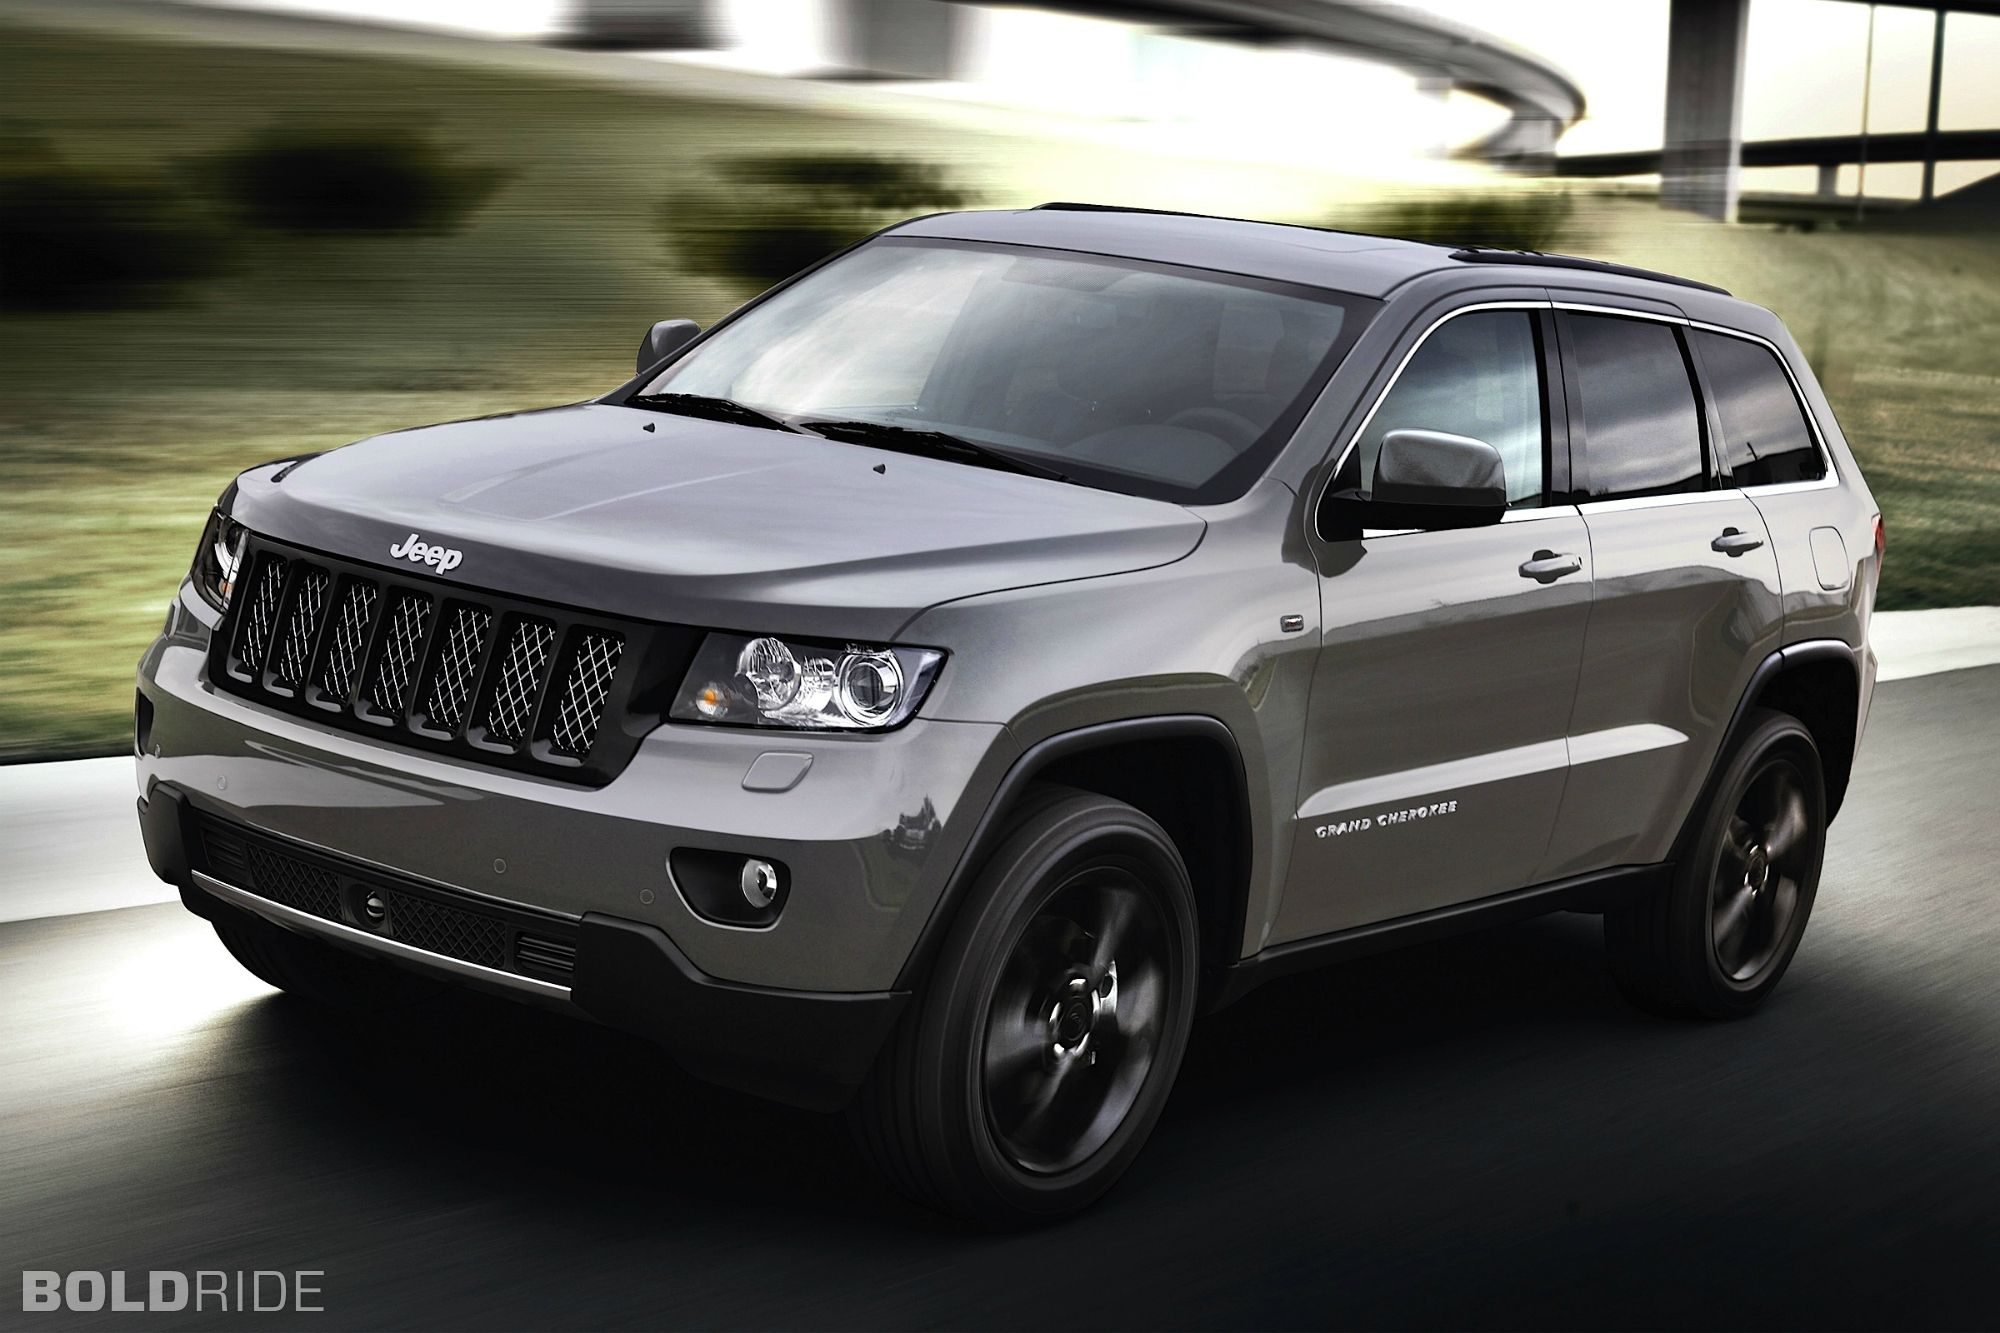 Delightful 2012 Jeep Grand Cherokee S Limited